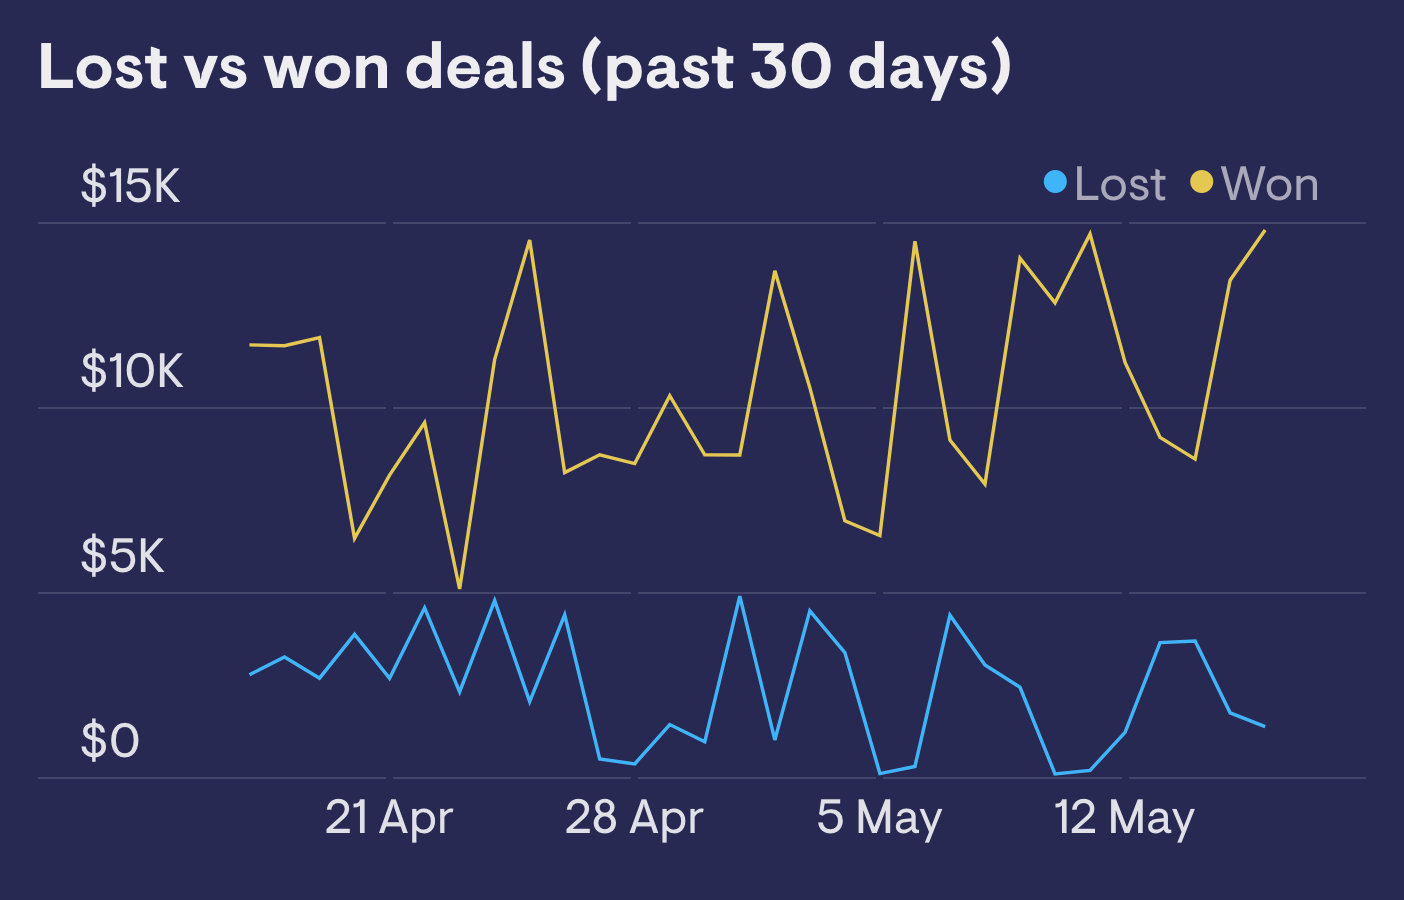 Lost vs won deals